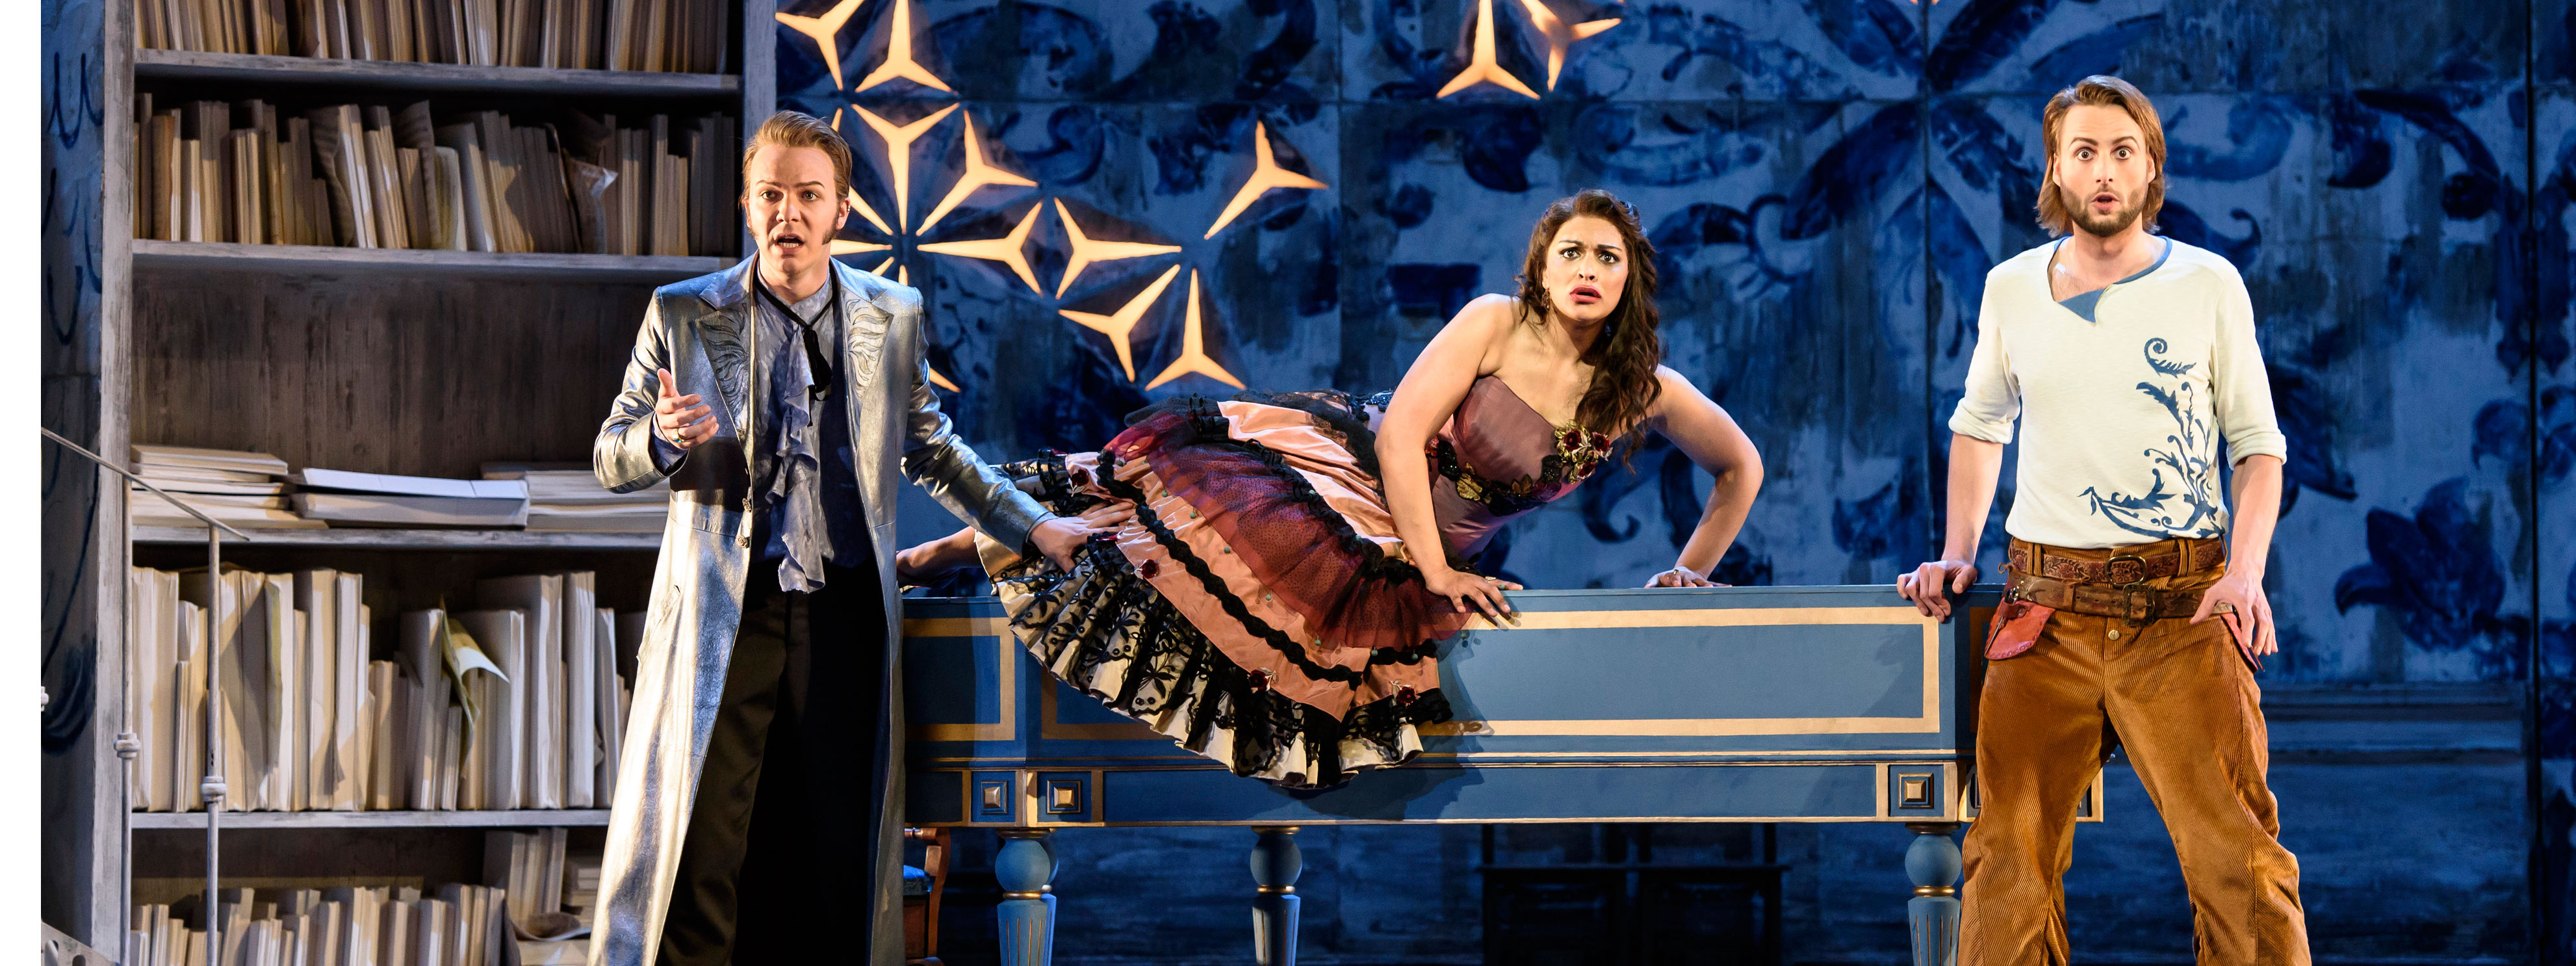 A theatre performance at the Glyndebourne festival 2019